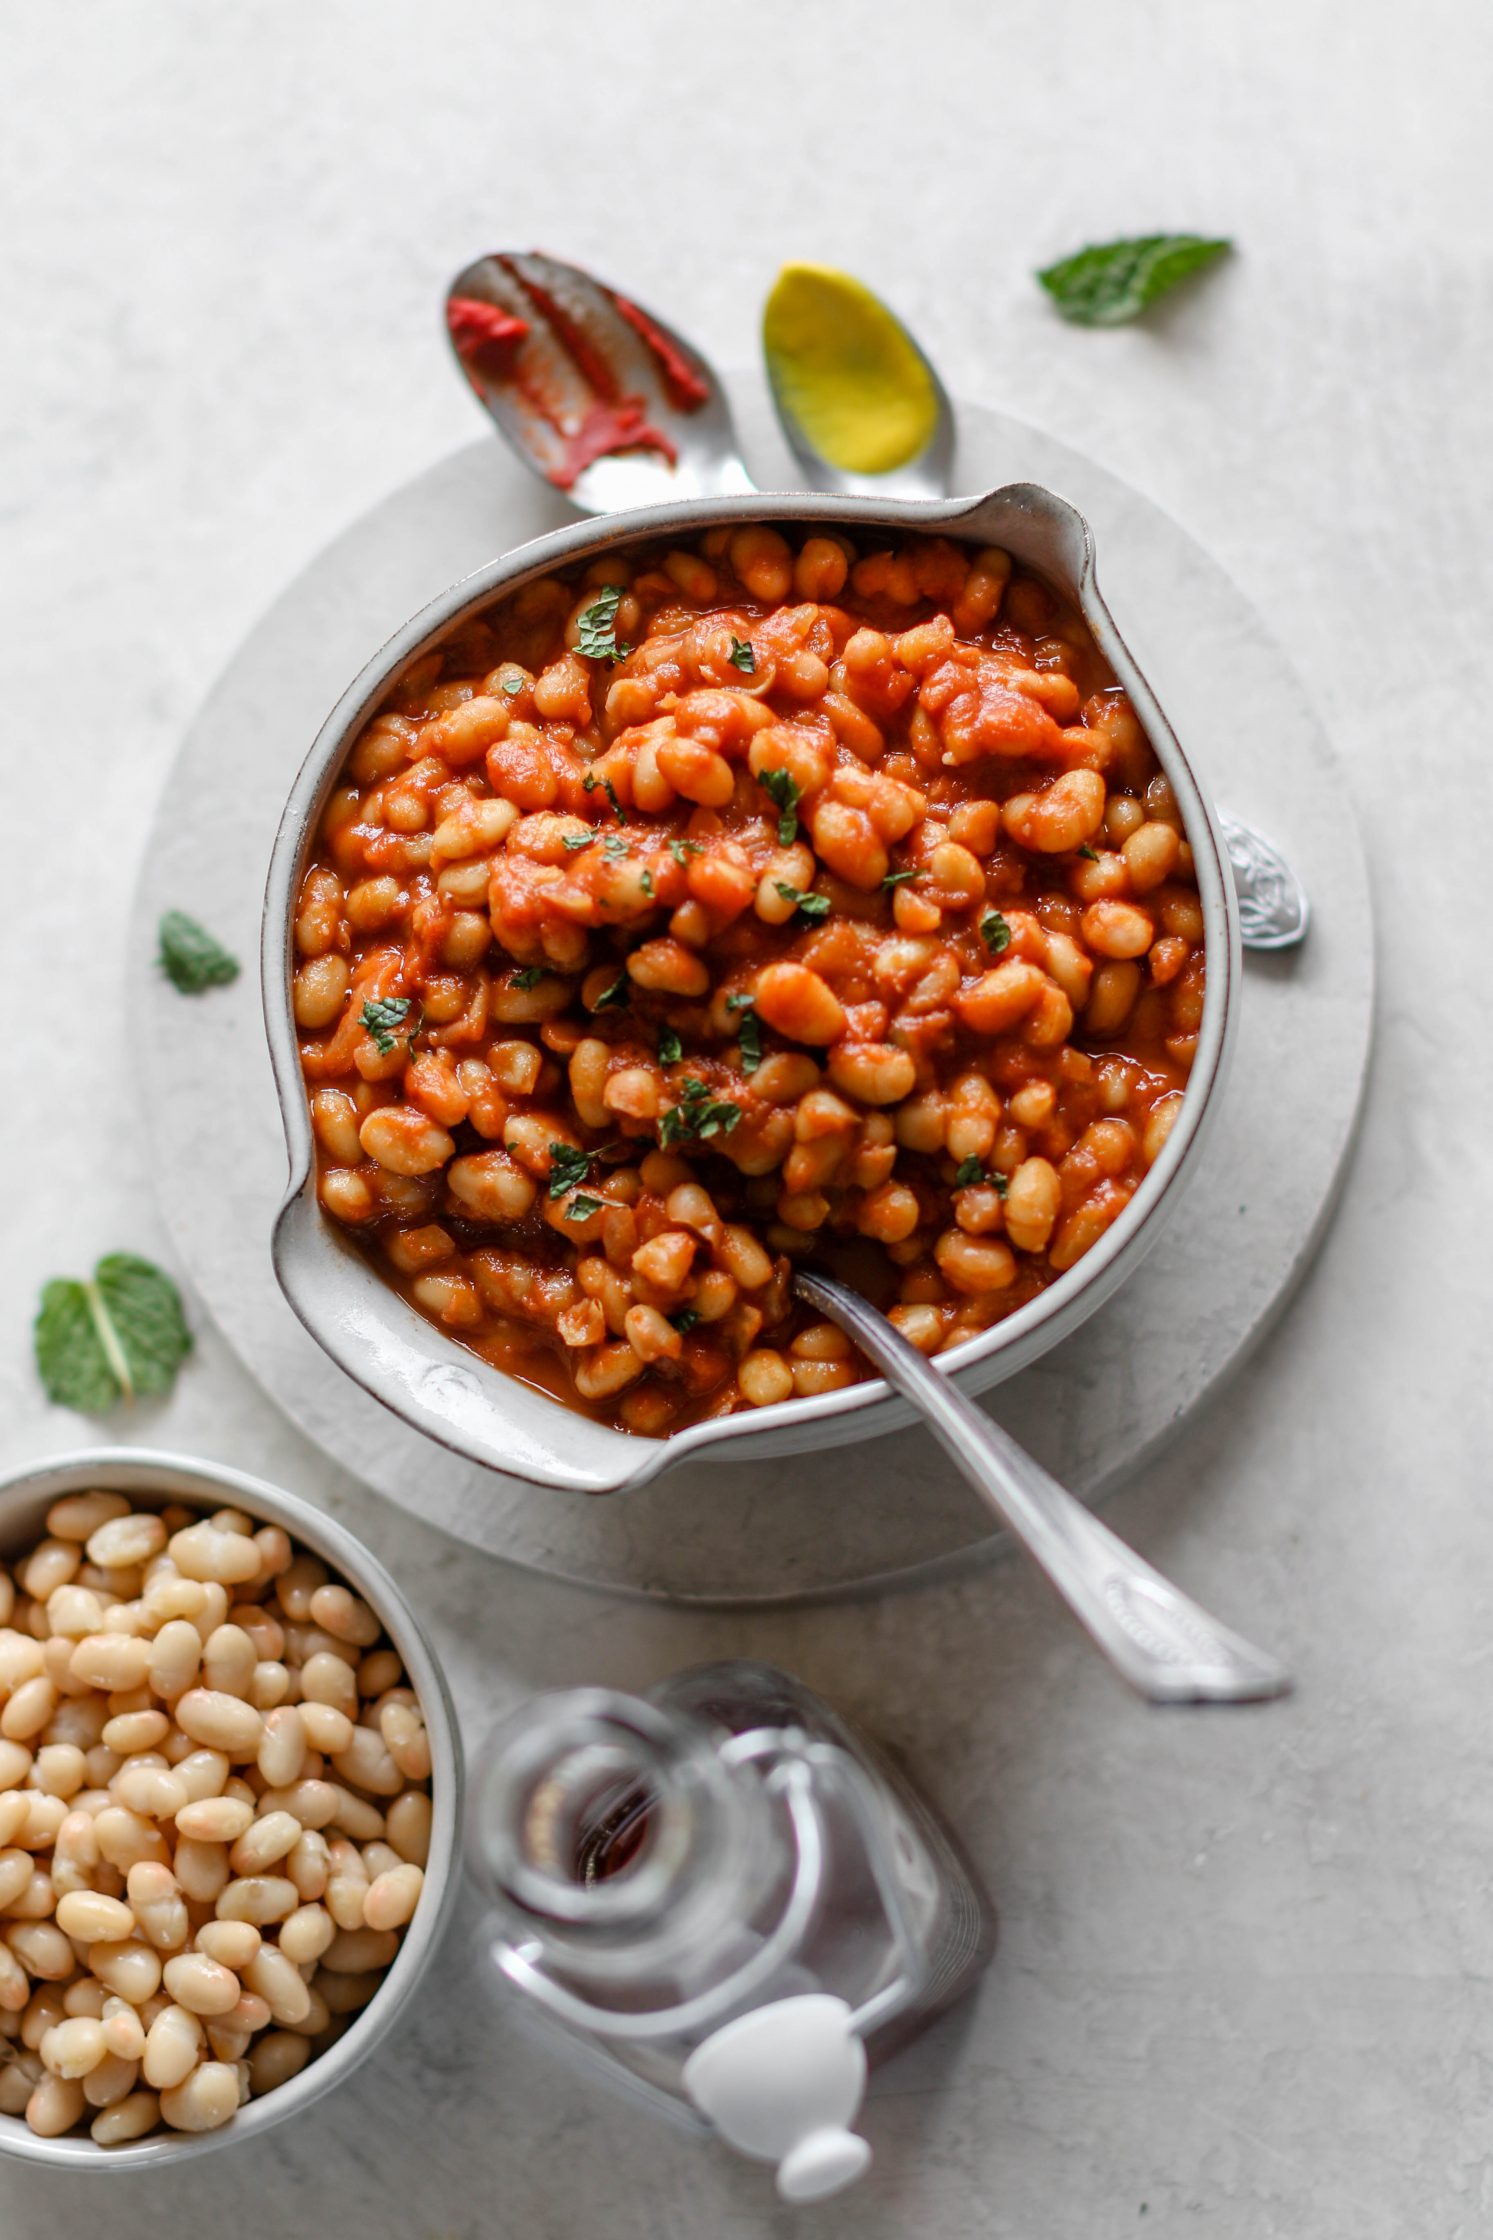 Vegan Maple Baked Beans by Flora & Vino